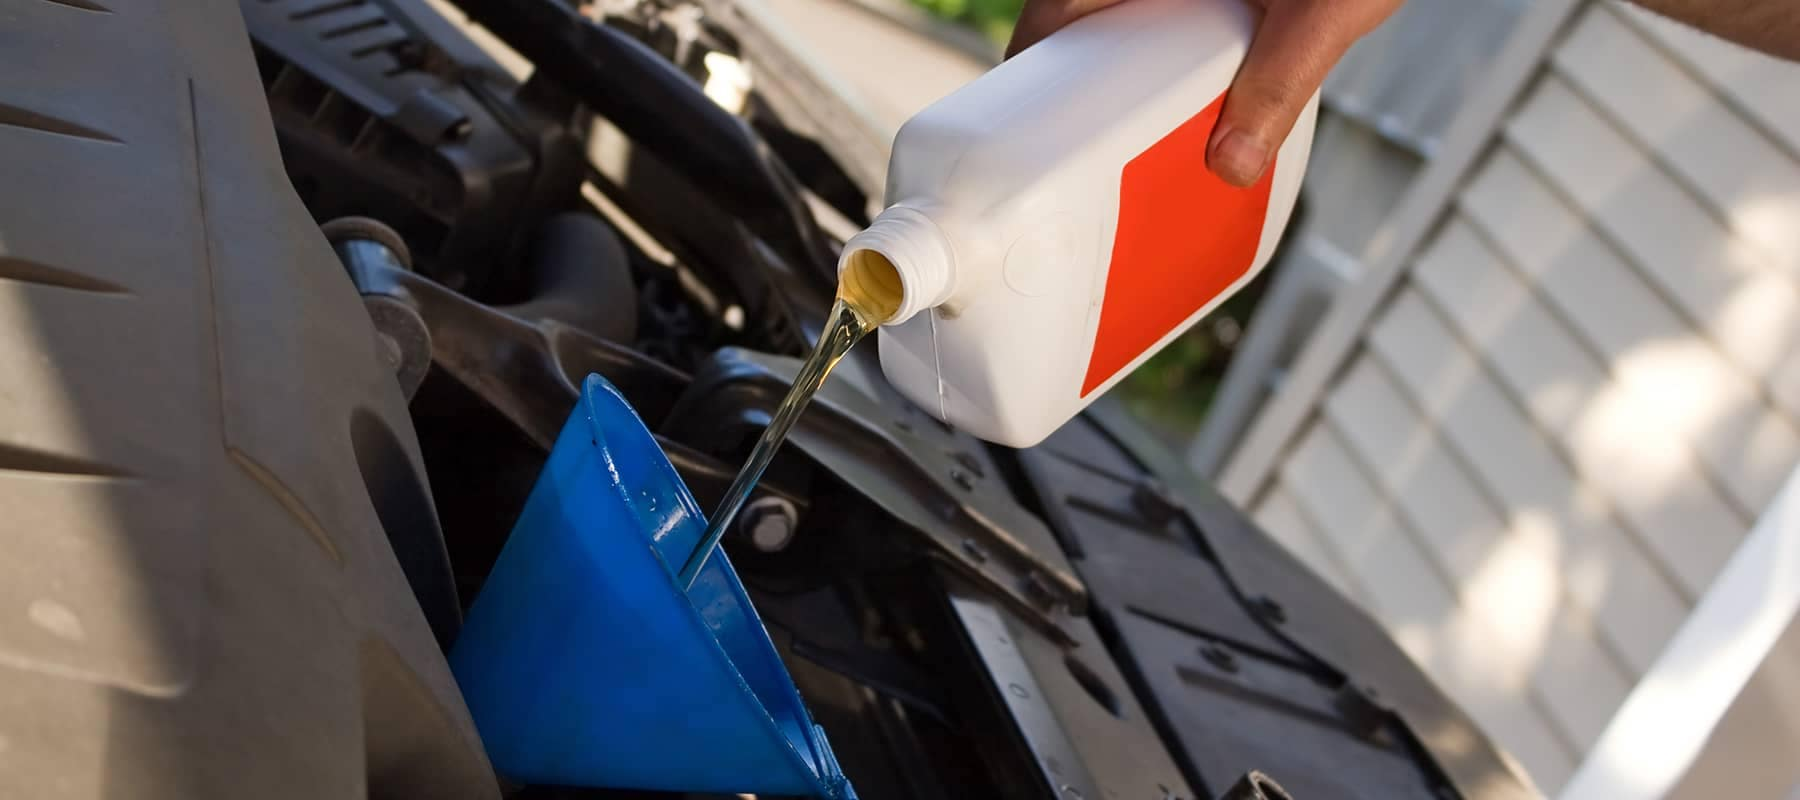 How Much Is An Oil Change >> How Much Is An Oil Change Oil Change Price Redding